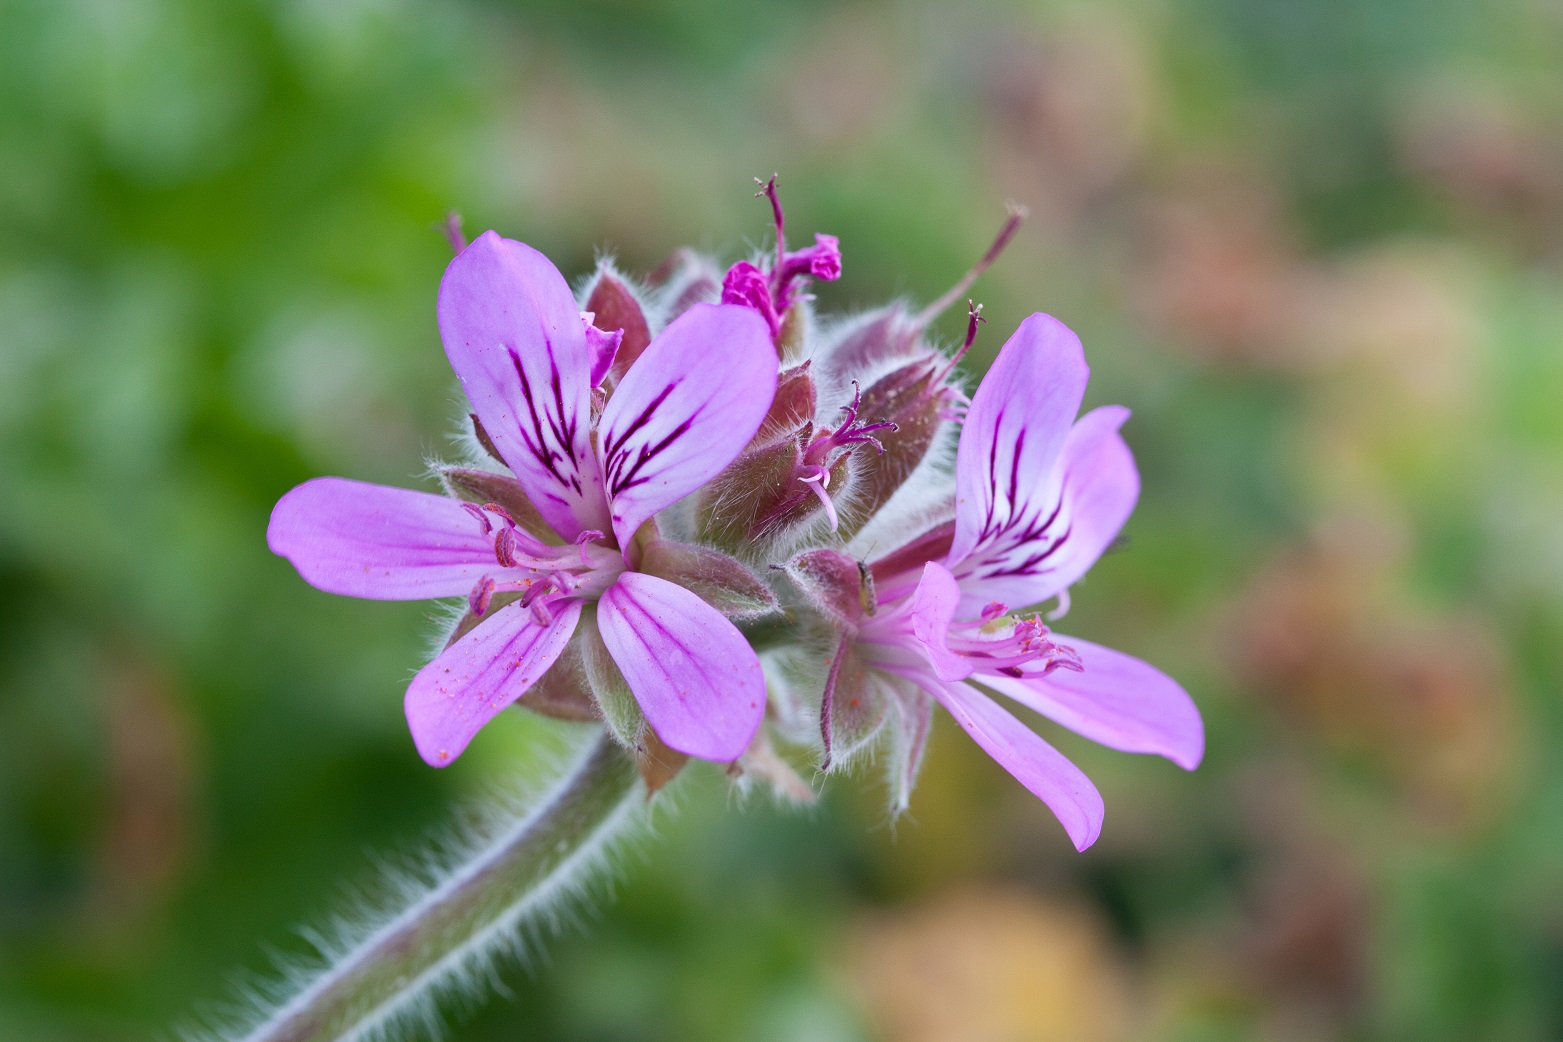 Pelargonium_capitatum,_two_blooms_detail